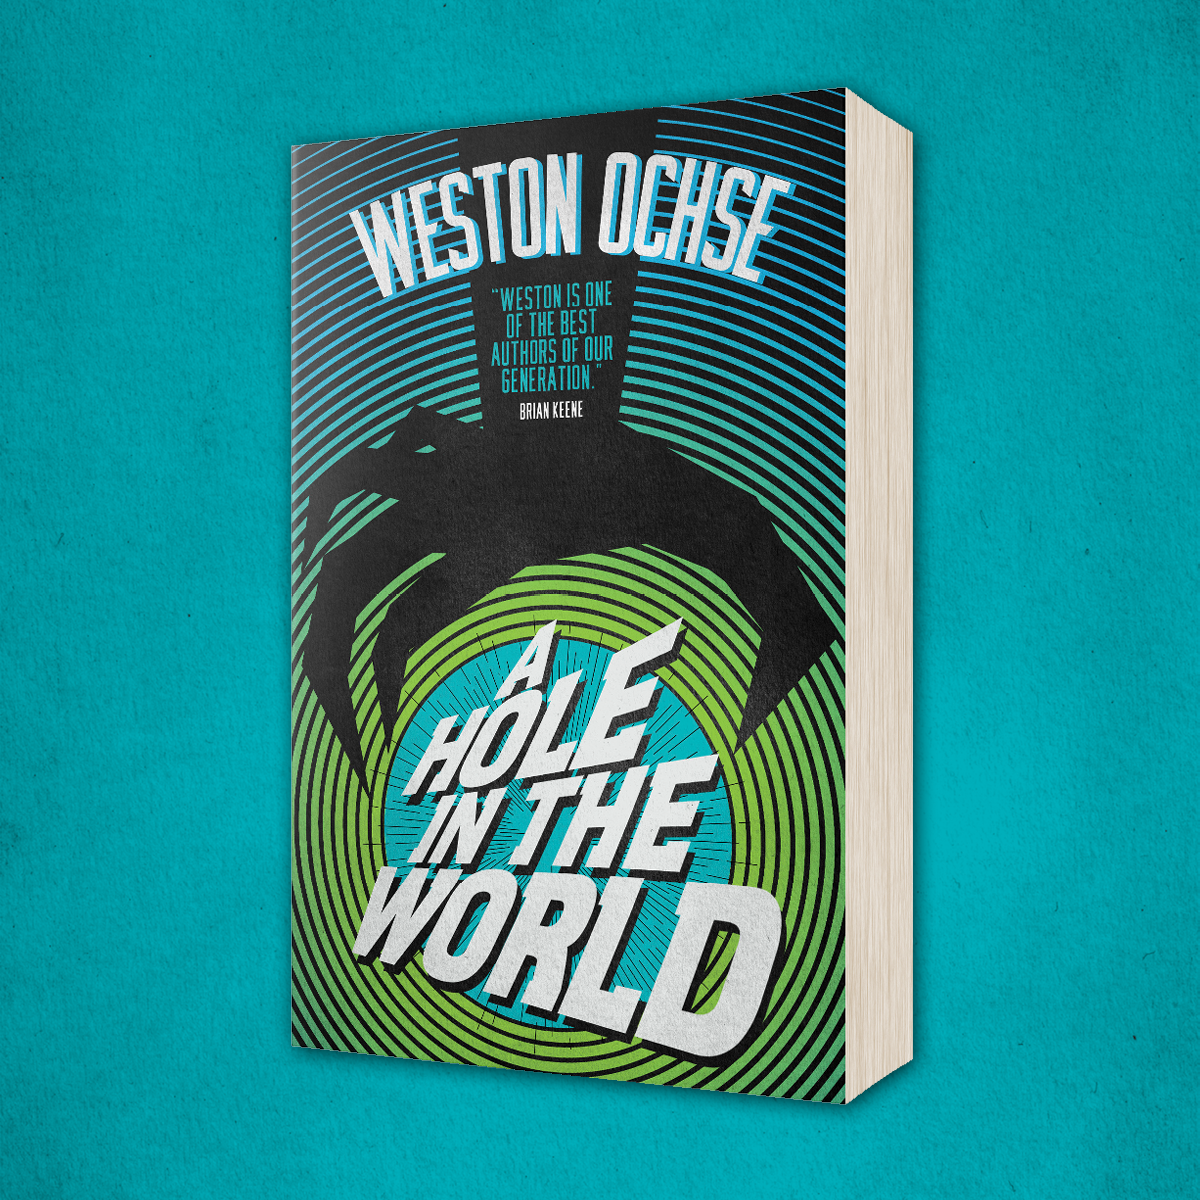 OUT NOW: A Hole in the World by Weston Ochse